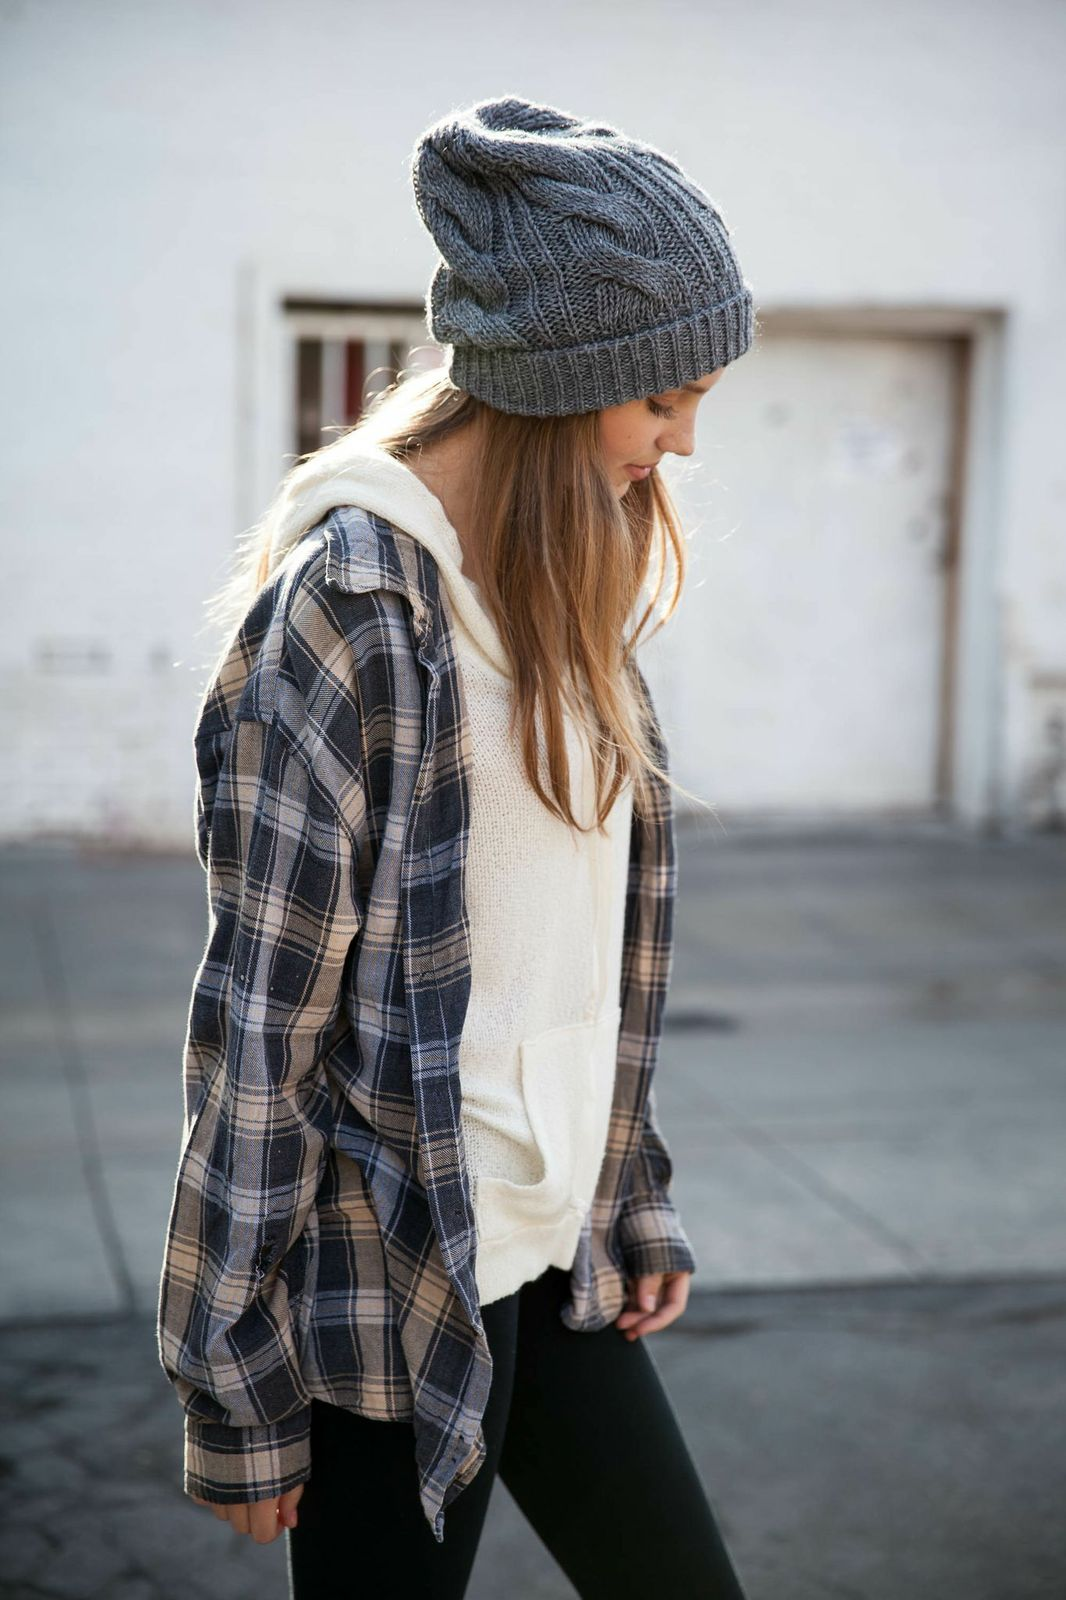 Plaid Fashion Trend, 2014 Unknown Fashion Blogger